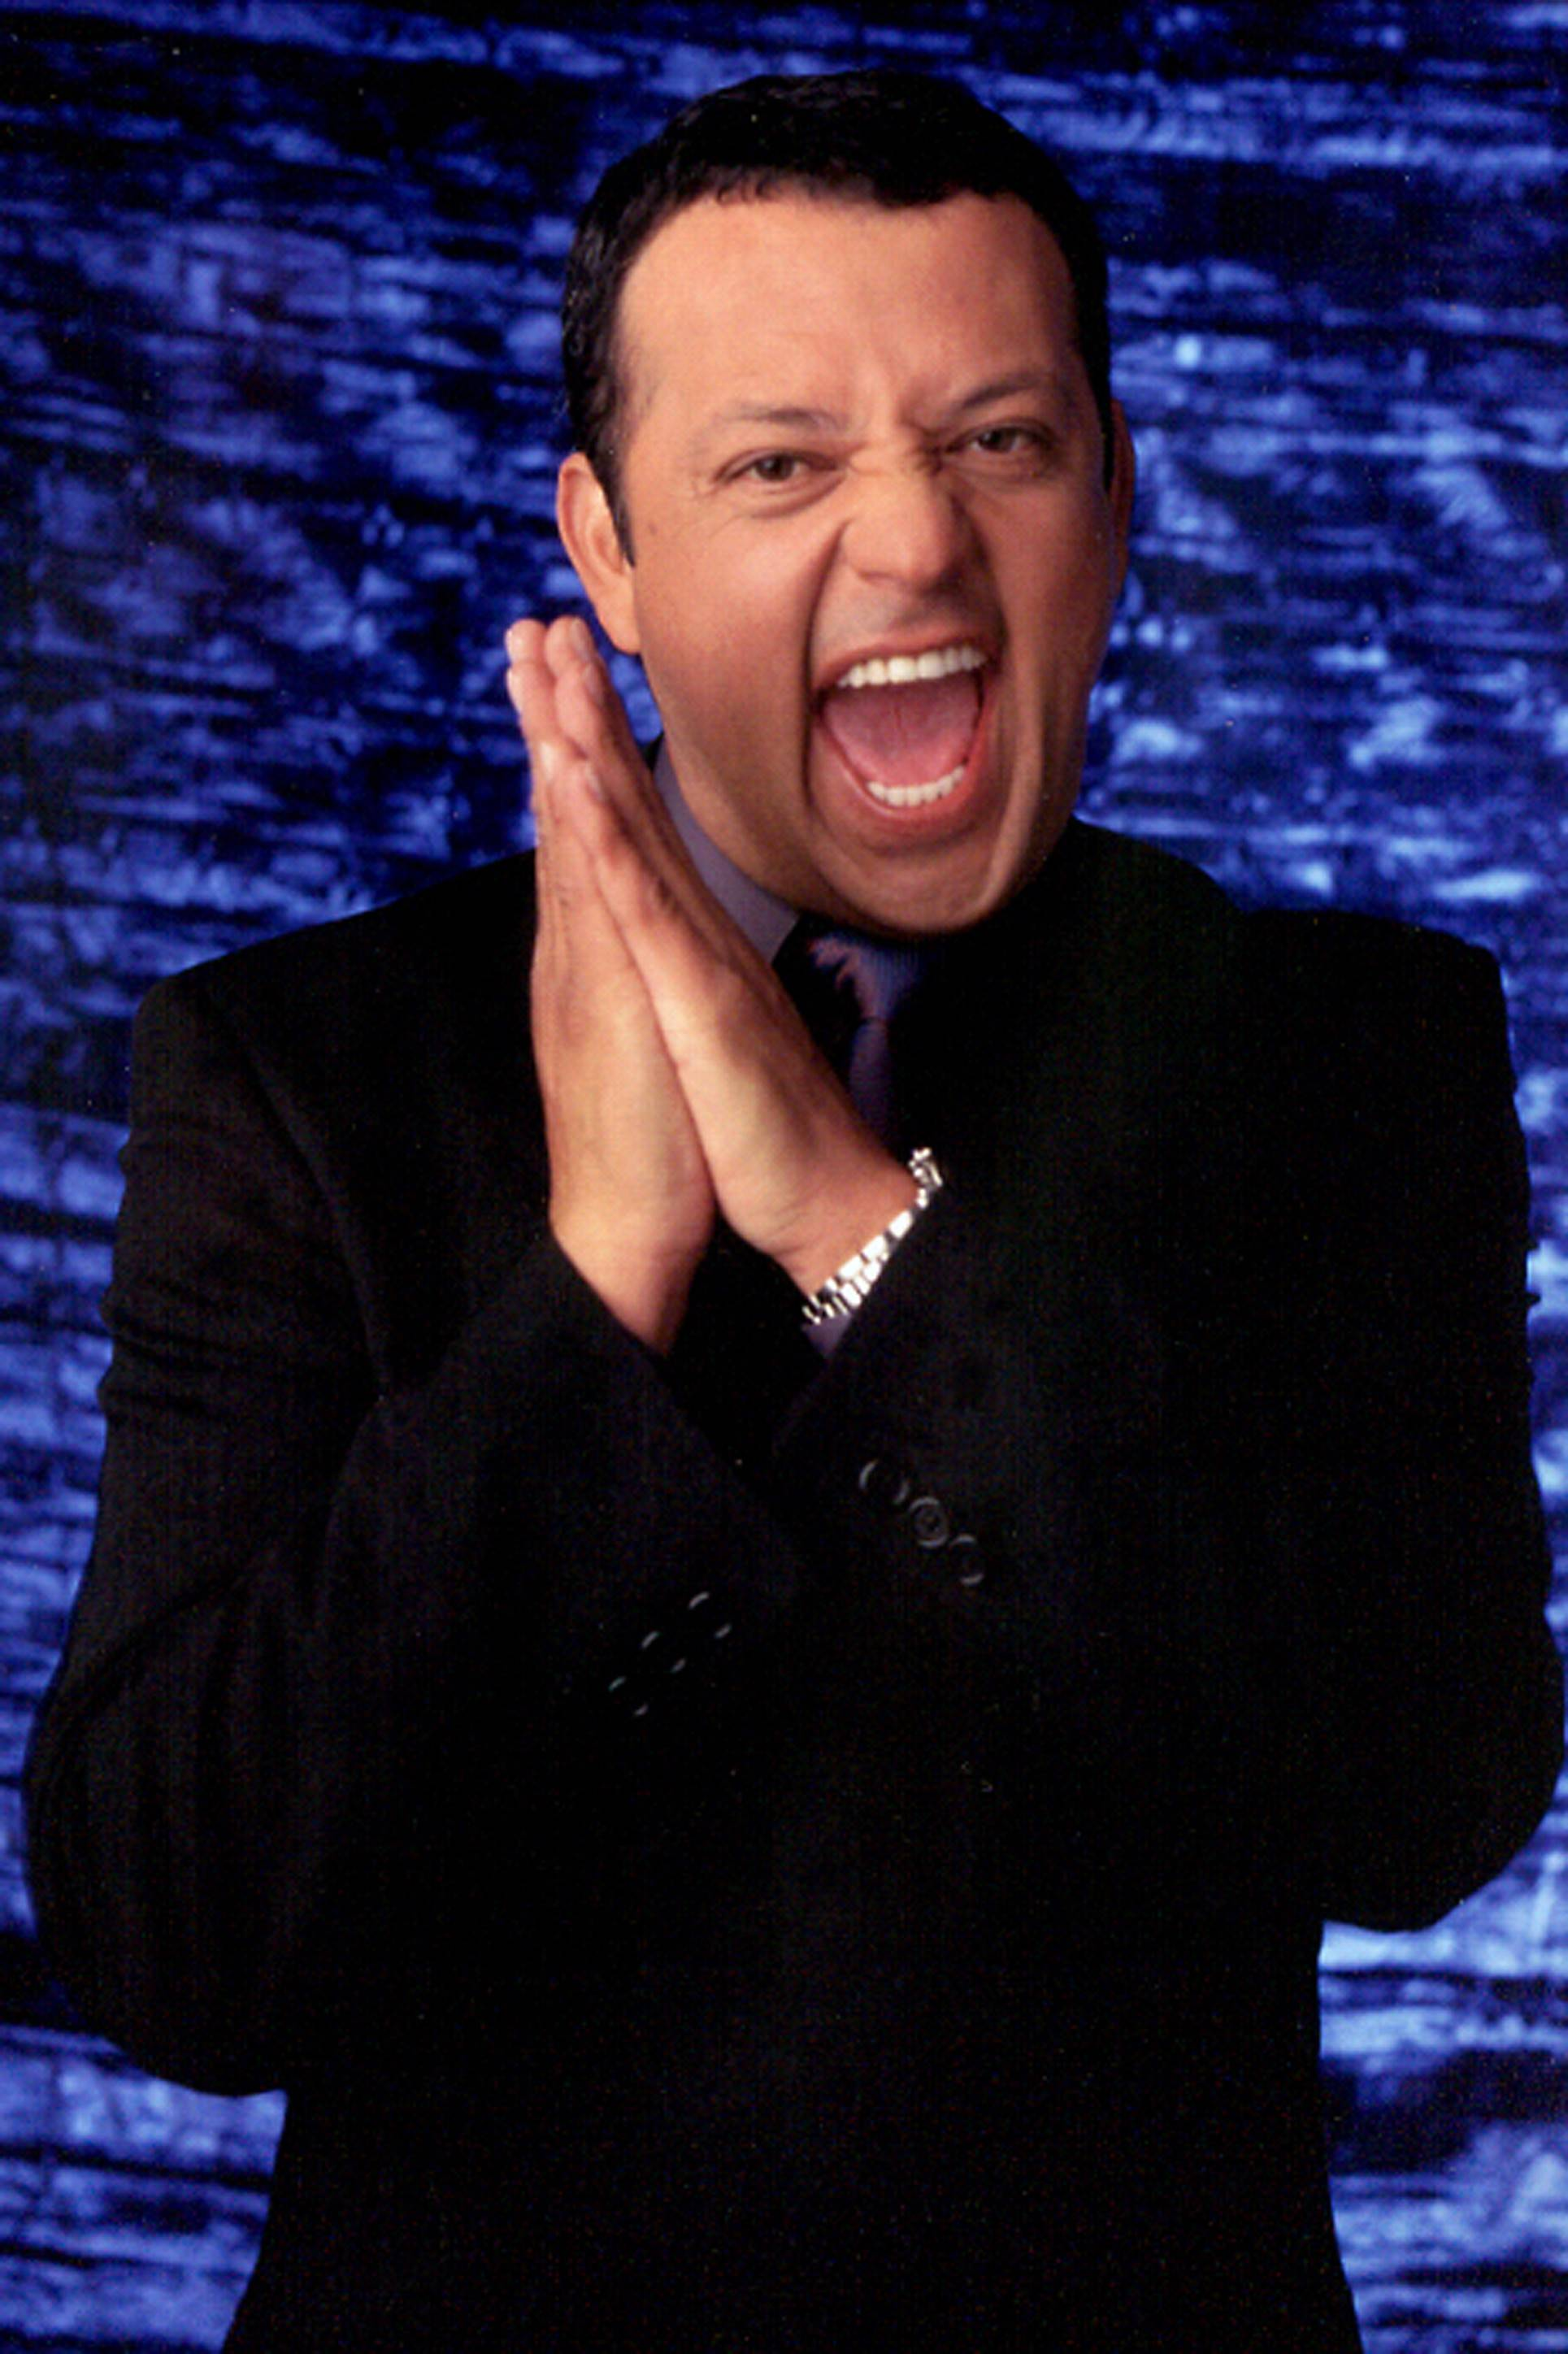 Comedian and actor Paul Rodriguez performs at the Improv Comedy Showcase in Schaumburg.